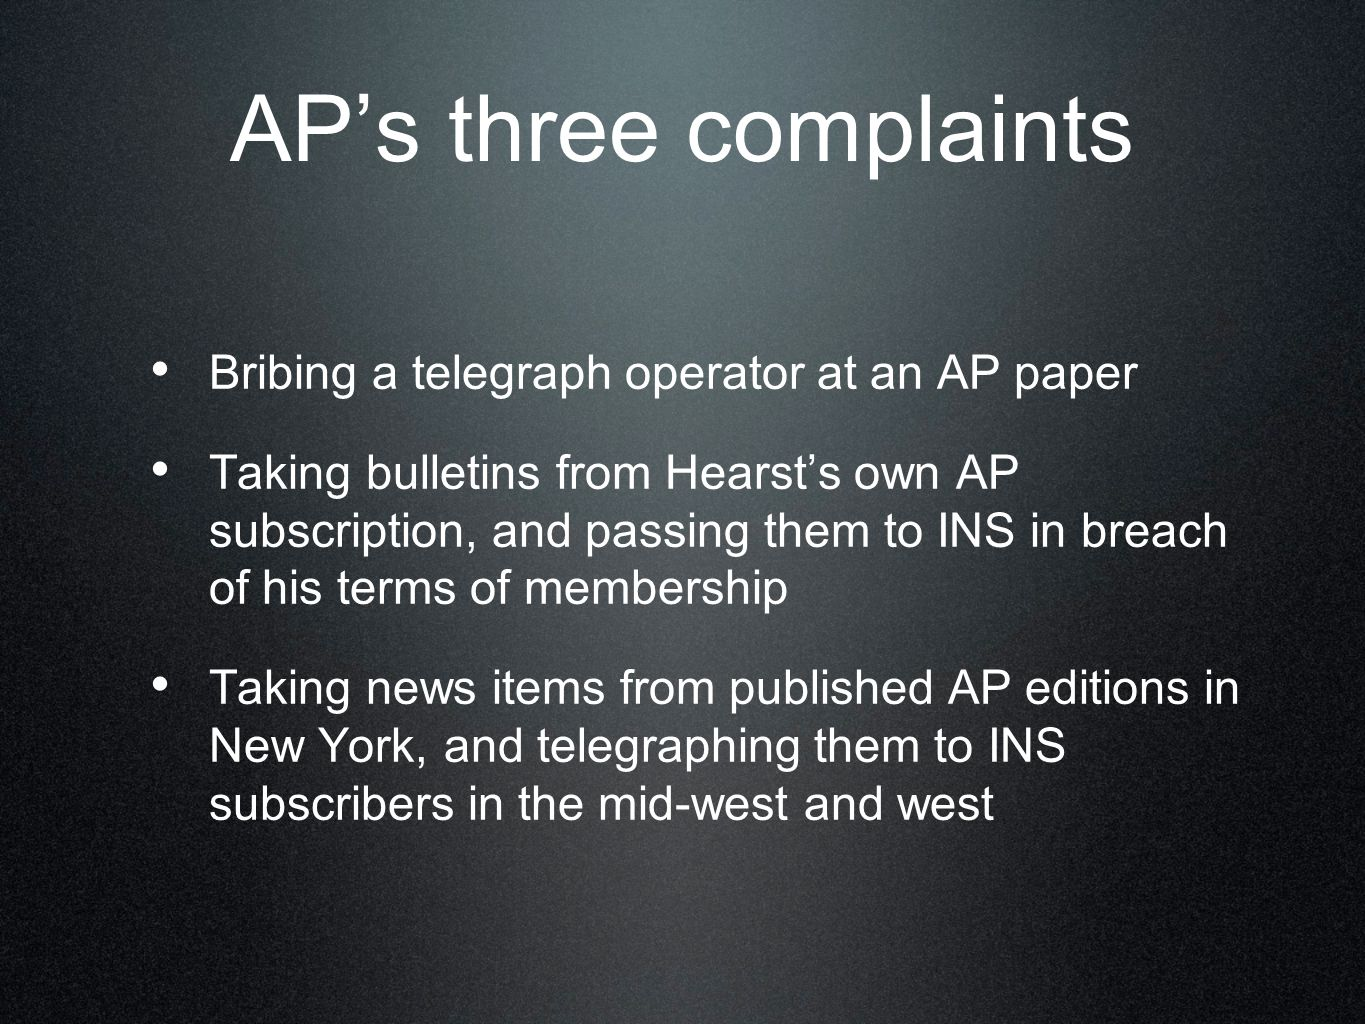 AP's three complaints Bribing a telegraph operator at an AP paper Taking bulletins from Hearst's own AP subscription, and passing them to INS in breach of his terms of membership Taking news items from published AP editions in New York, and telegraphing them to INS subscribers in the mid-west and west